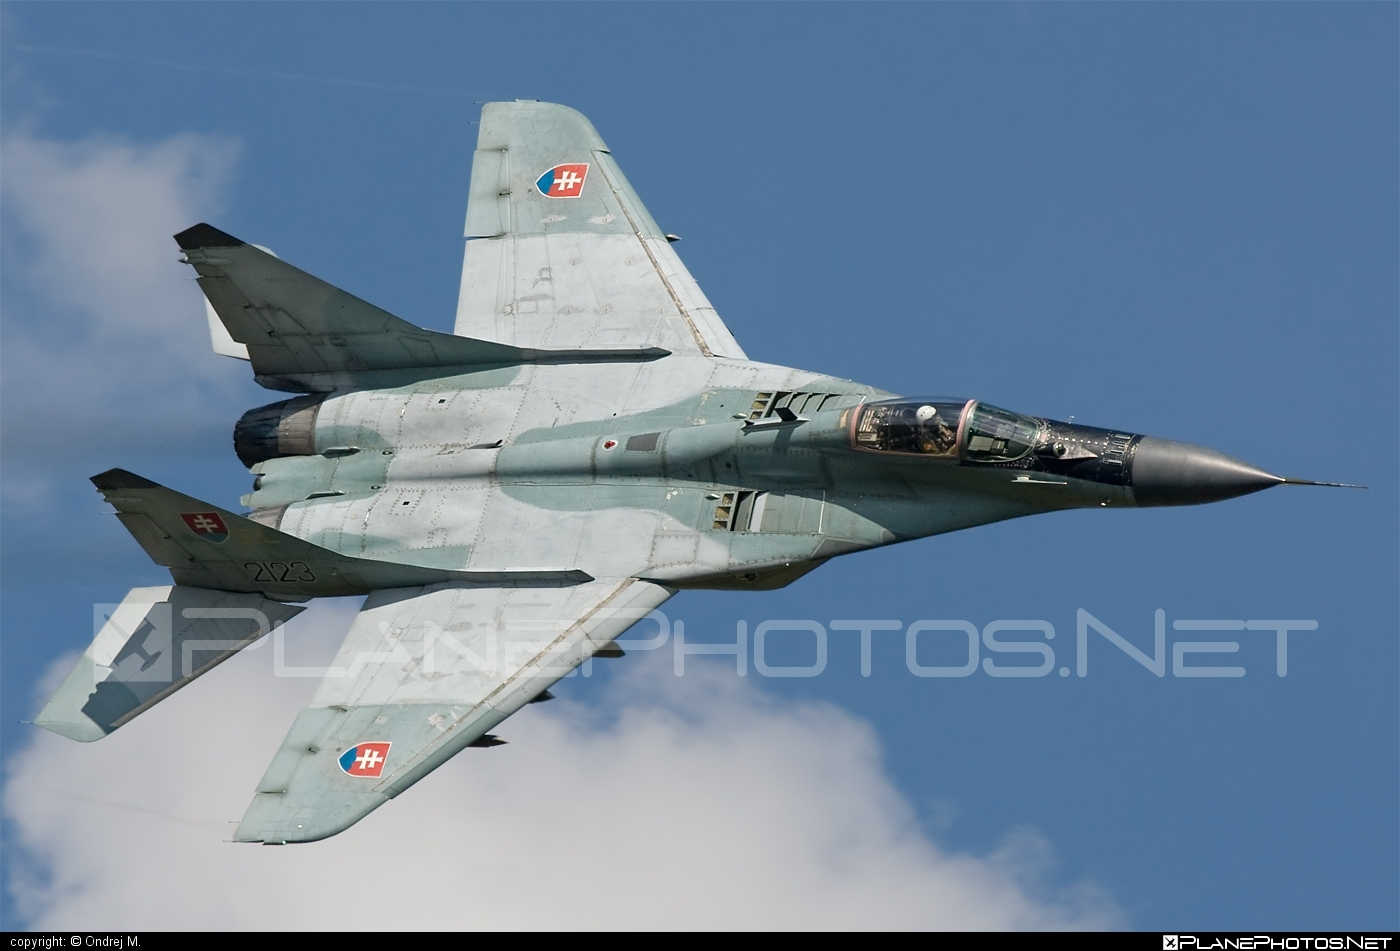 Mikoyan-Gurevich MiG-29AS - 2123 operated by Vzdušné sily OS SR (Slovak Air Force) #mig #mig29 #mig29as #mikoyangurevich #slovakairforce #vzdusnesilyossr